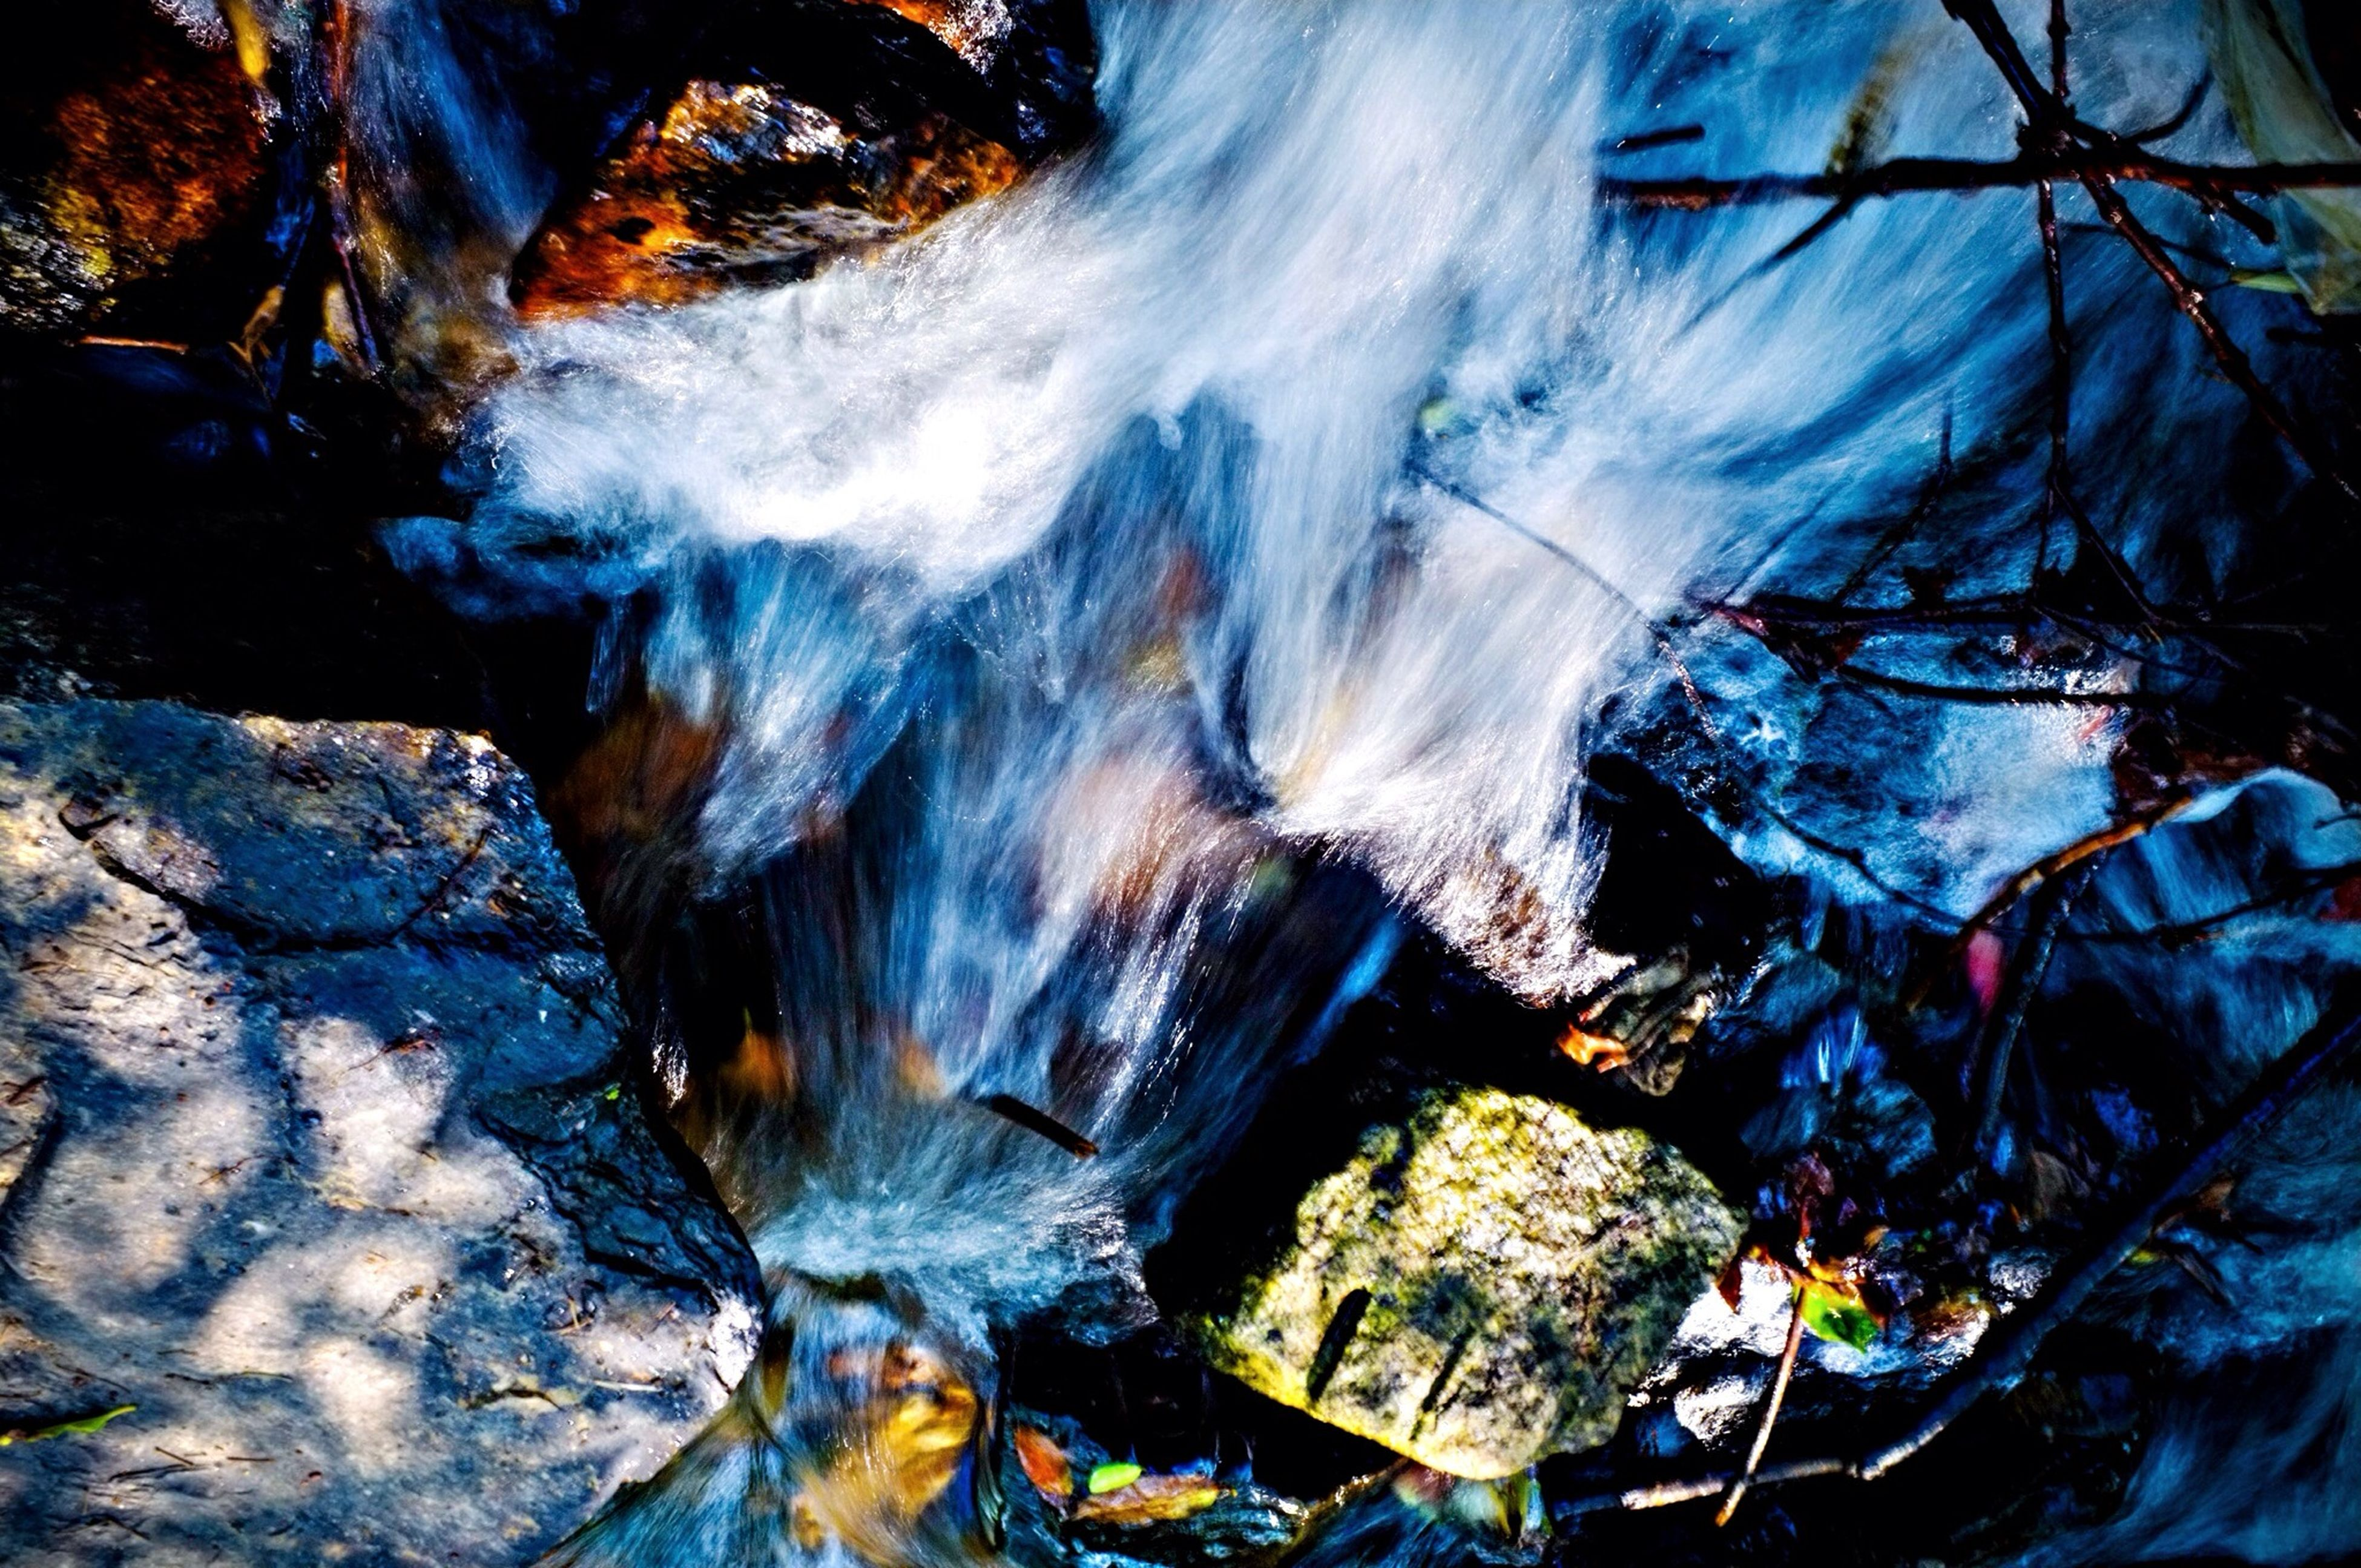 rock - object, close-up, nature, water, high angle view, motion, outdoors, heat - temperature, no people, day, season, firewood, burning, beauty in nature, ice, wood - material, frozen, rock formation, natural pattern, log